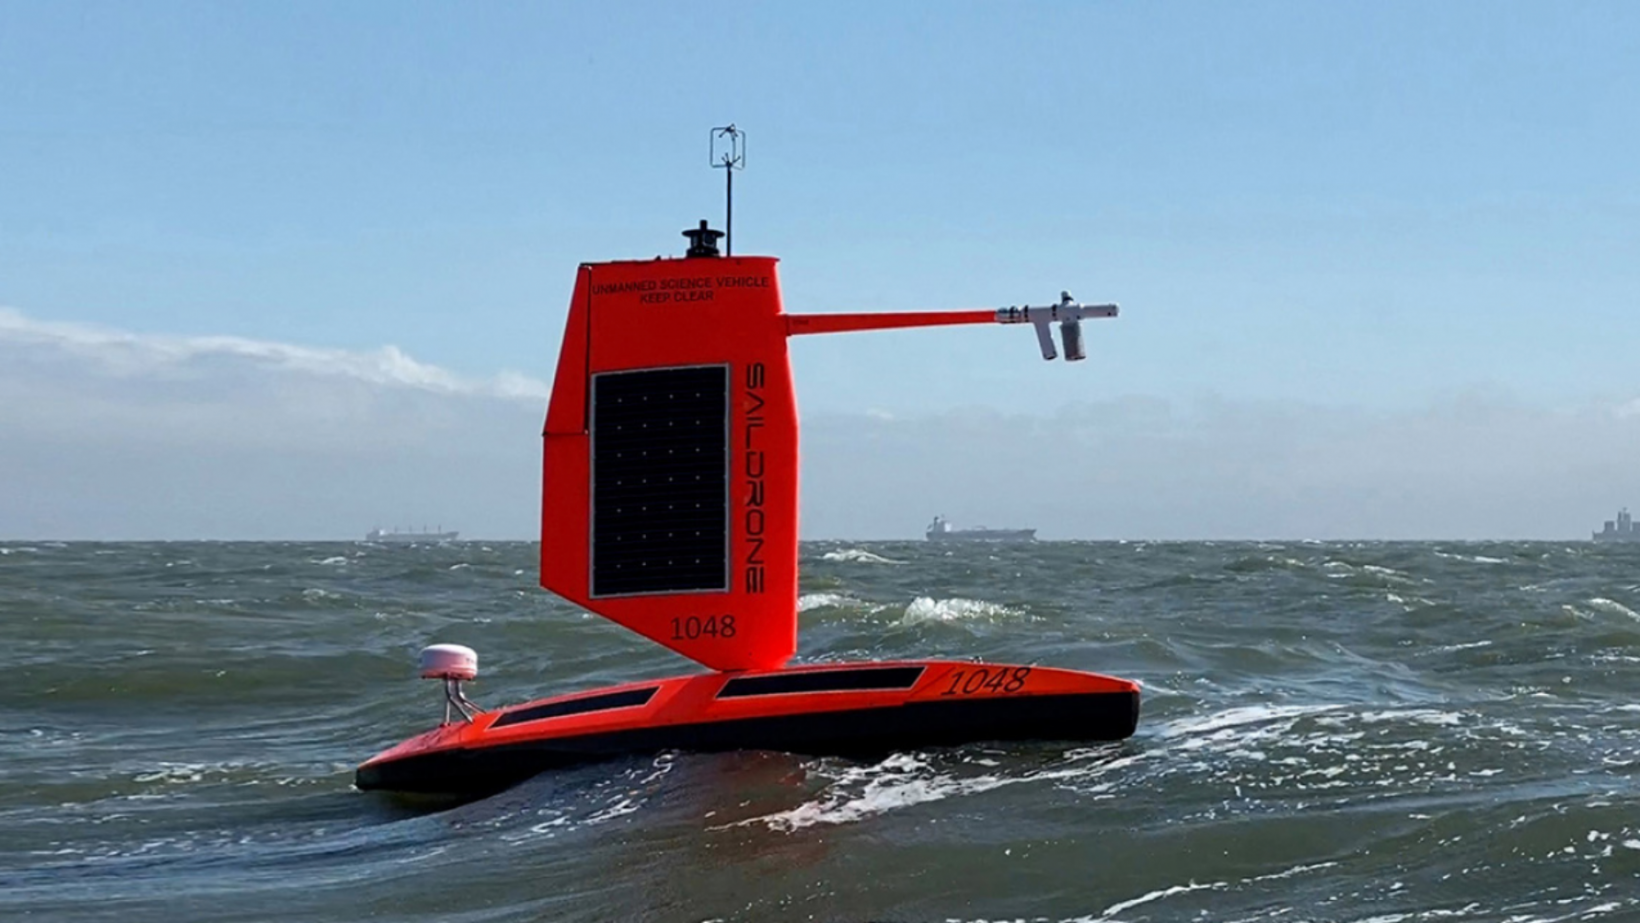 The Saildrone Explorer SD 1045 is capturing scientific data about hurricanes.